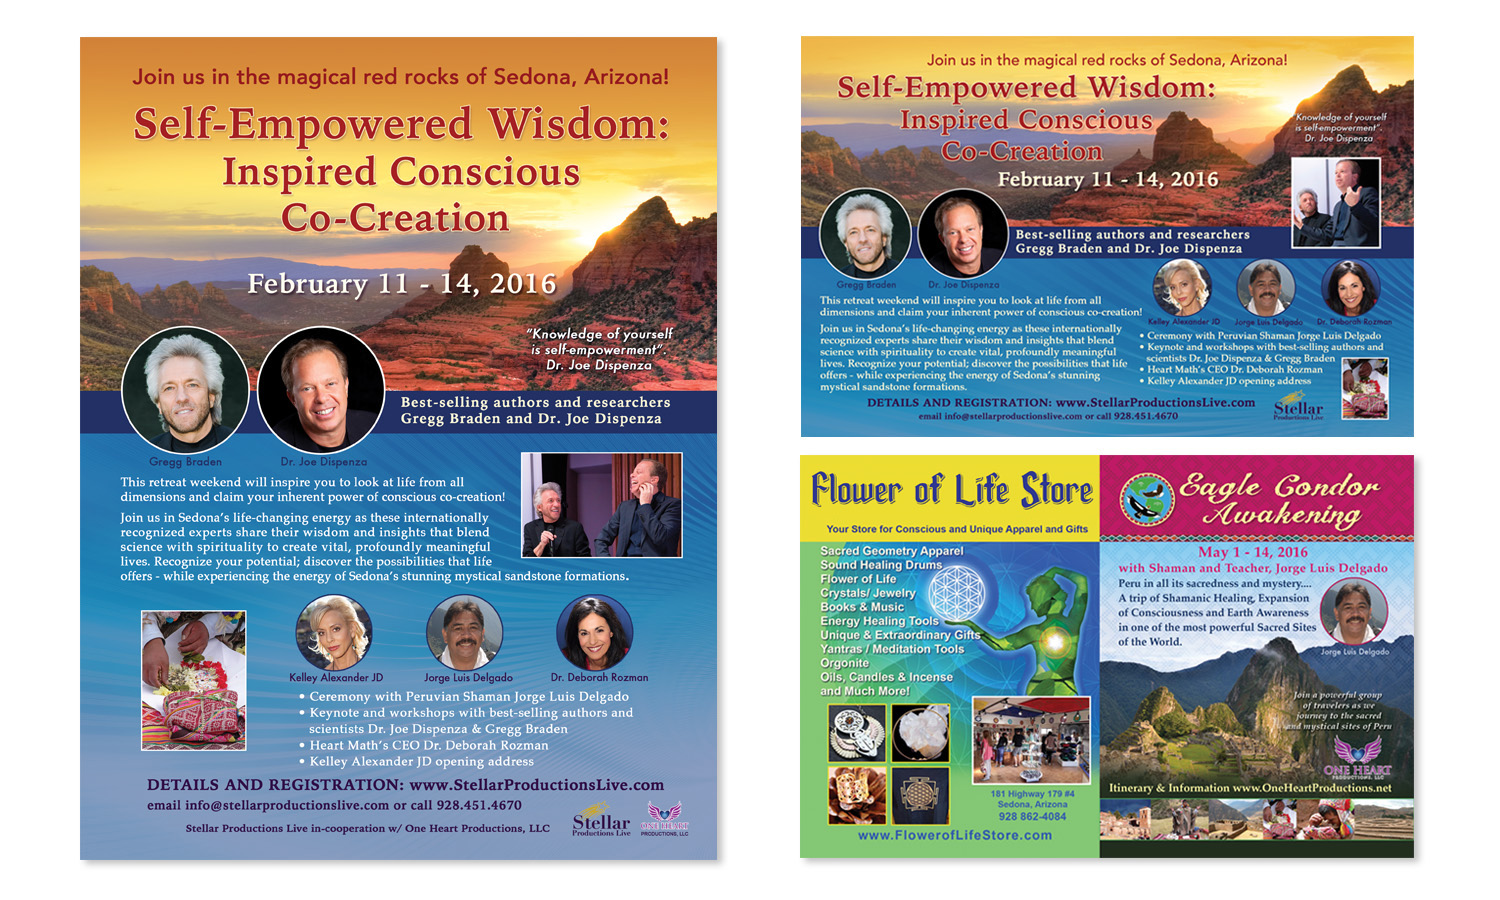 Self Empowered Wisdom Conference Advertising